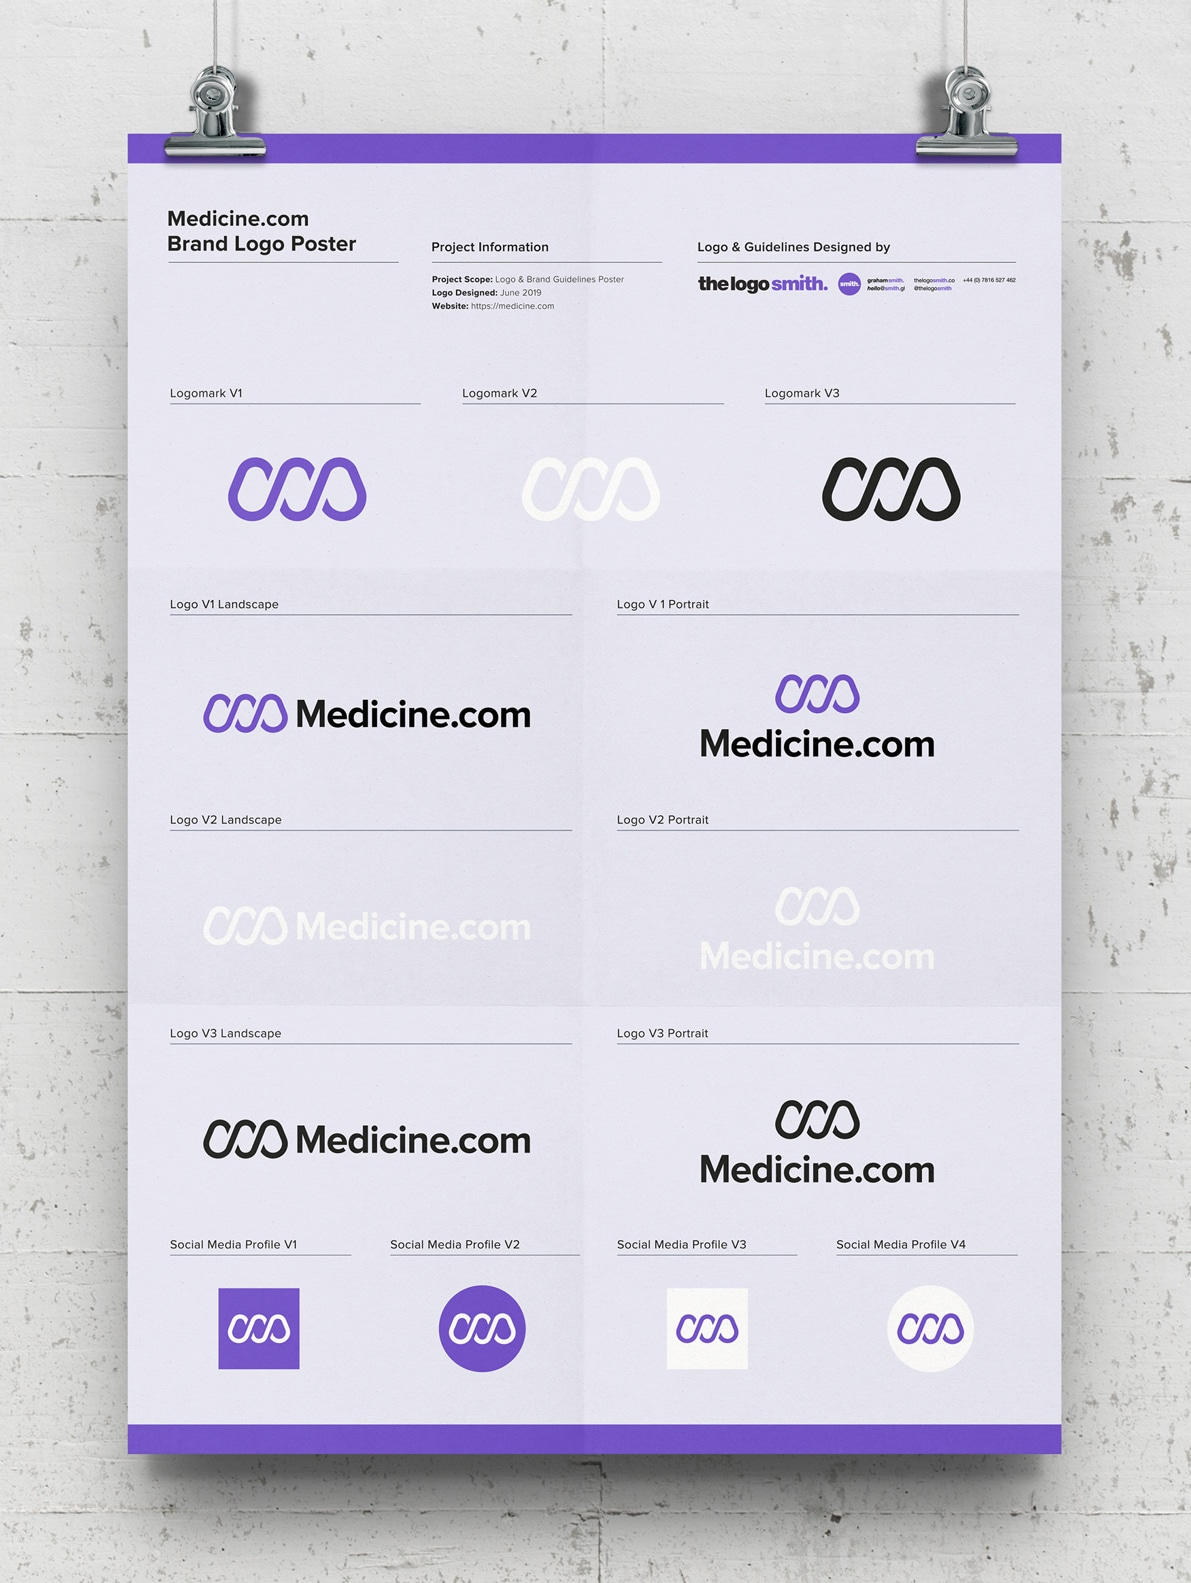 Brand Logo Poster Template Free Logo Mockup A3 Poster Designed by The Logo Smith